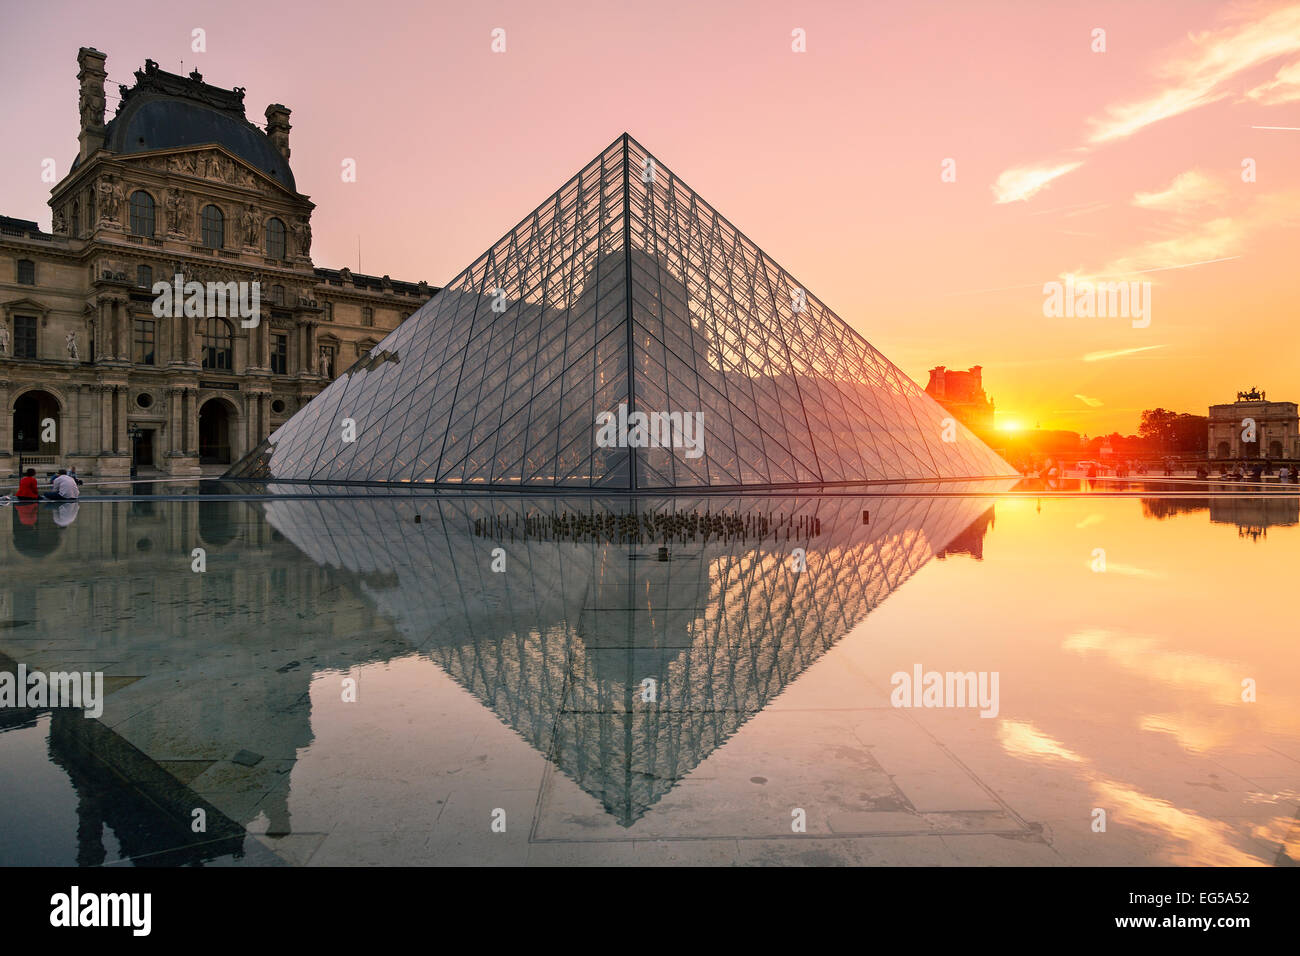 Paris, la pyramide du Louvre au coucher du soleil Photo Stock